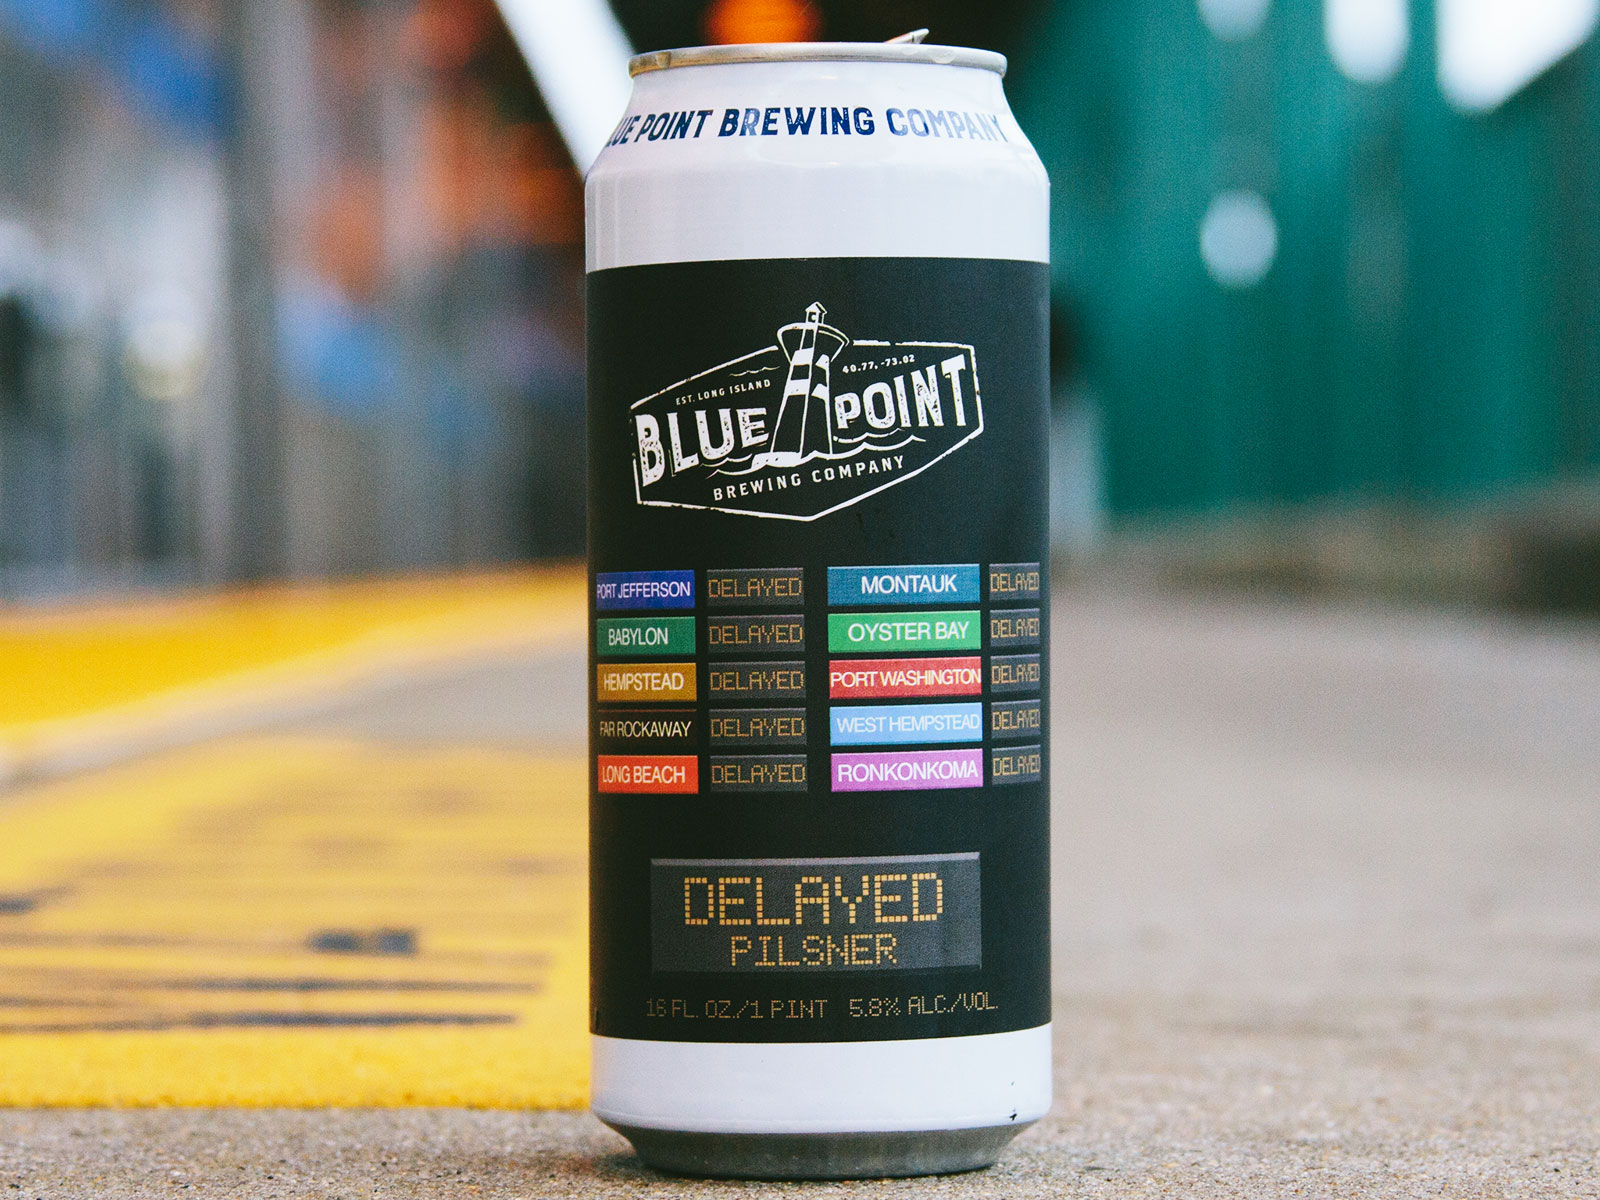 New beer aims to quench thirst of oft-delayed NYC commuters